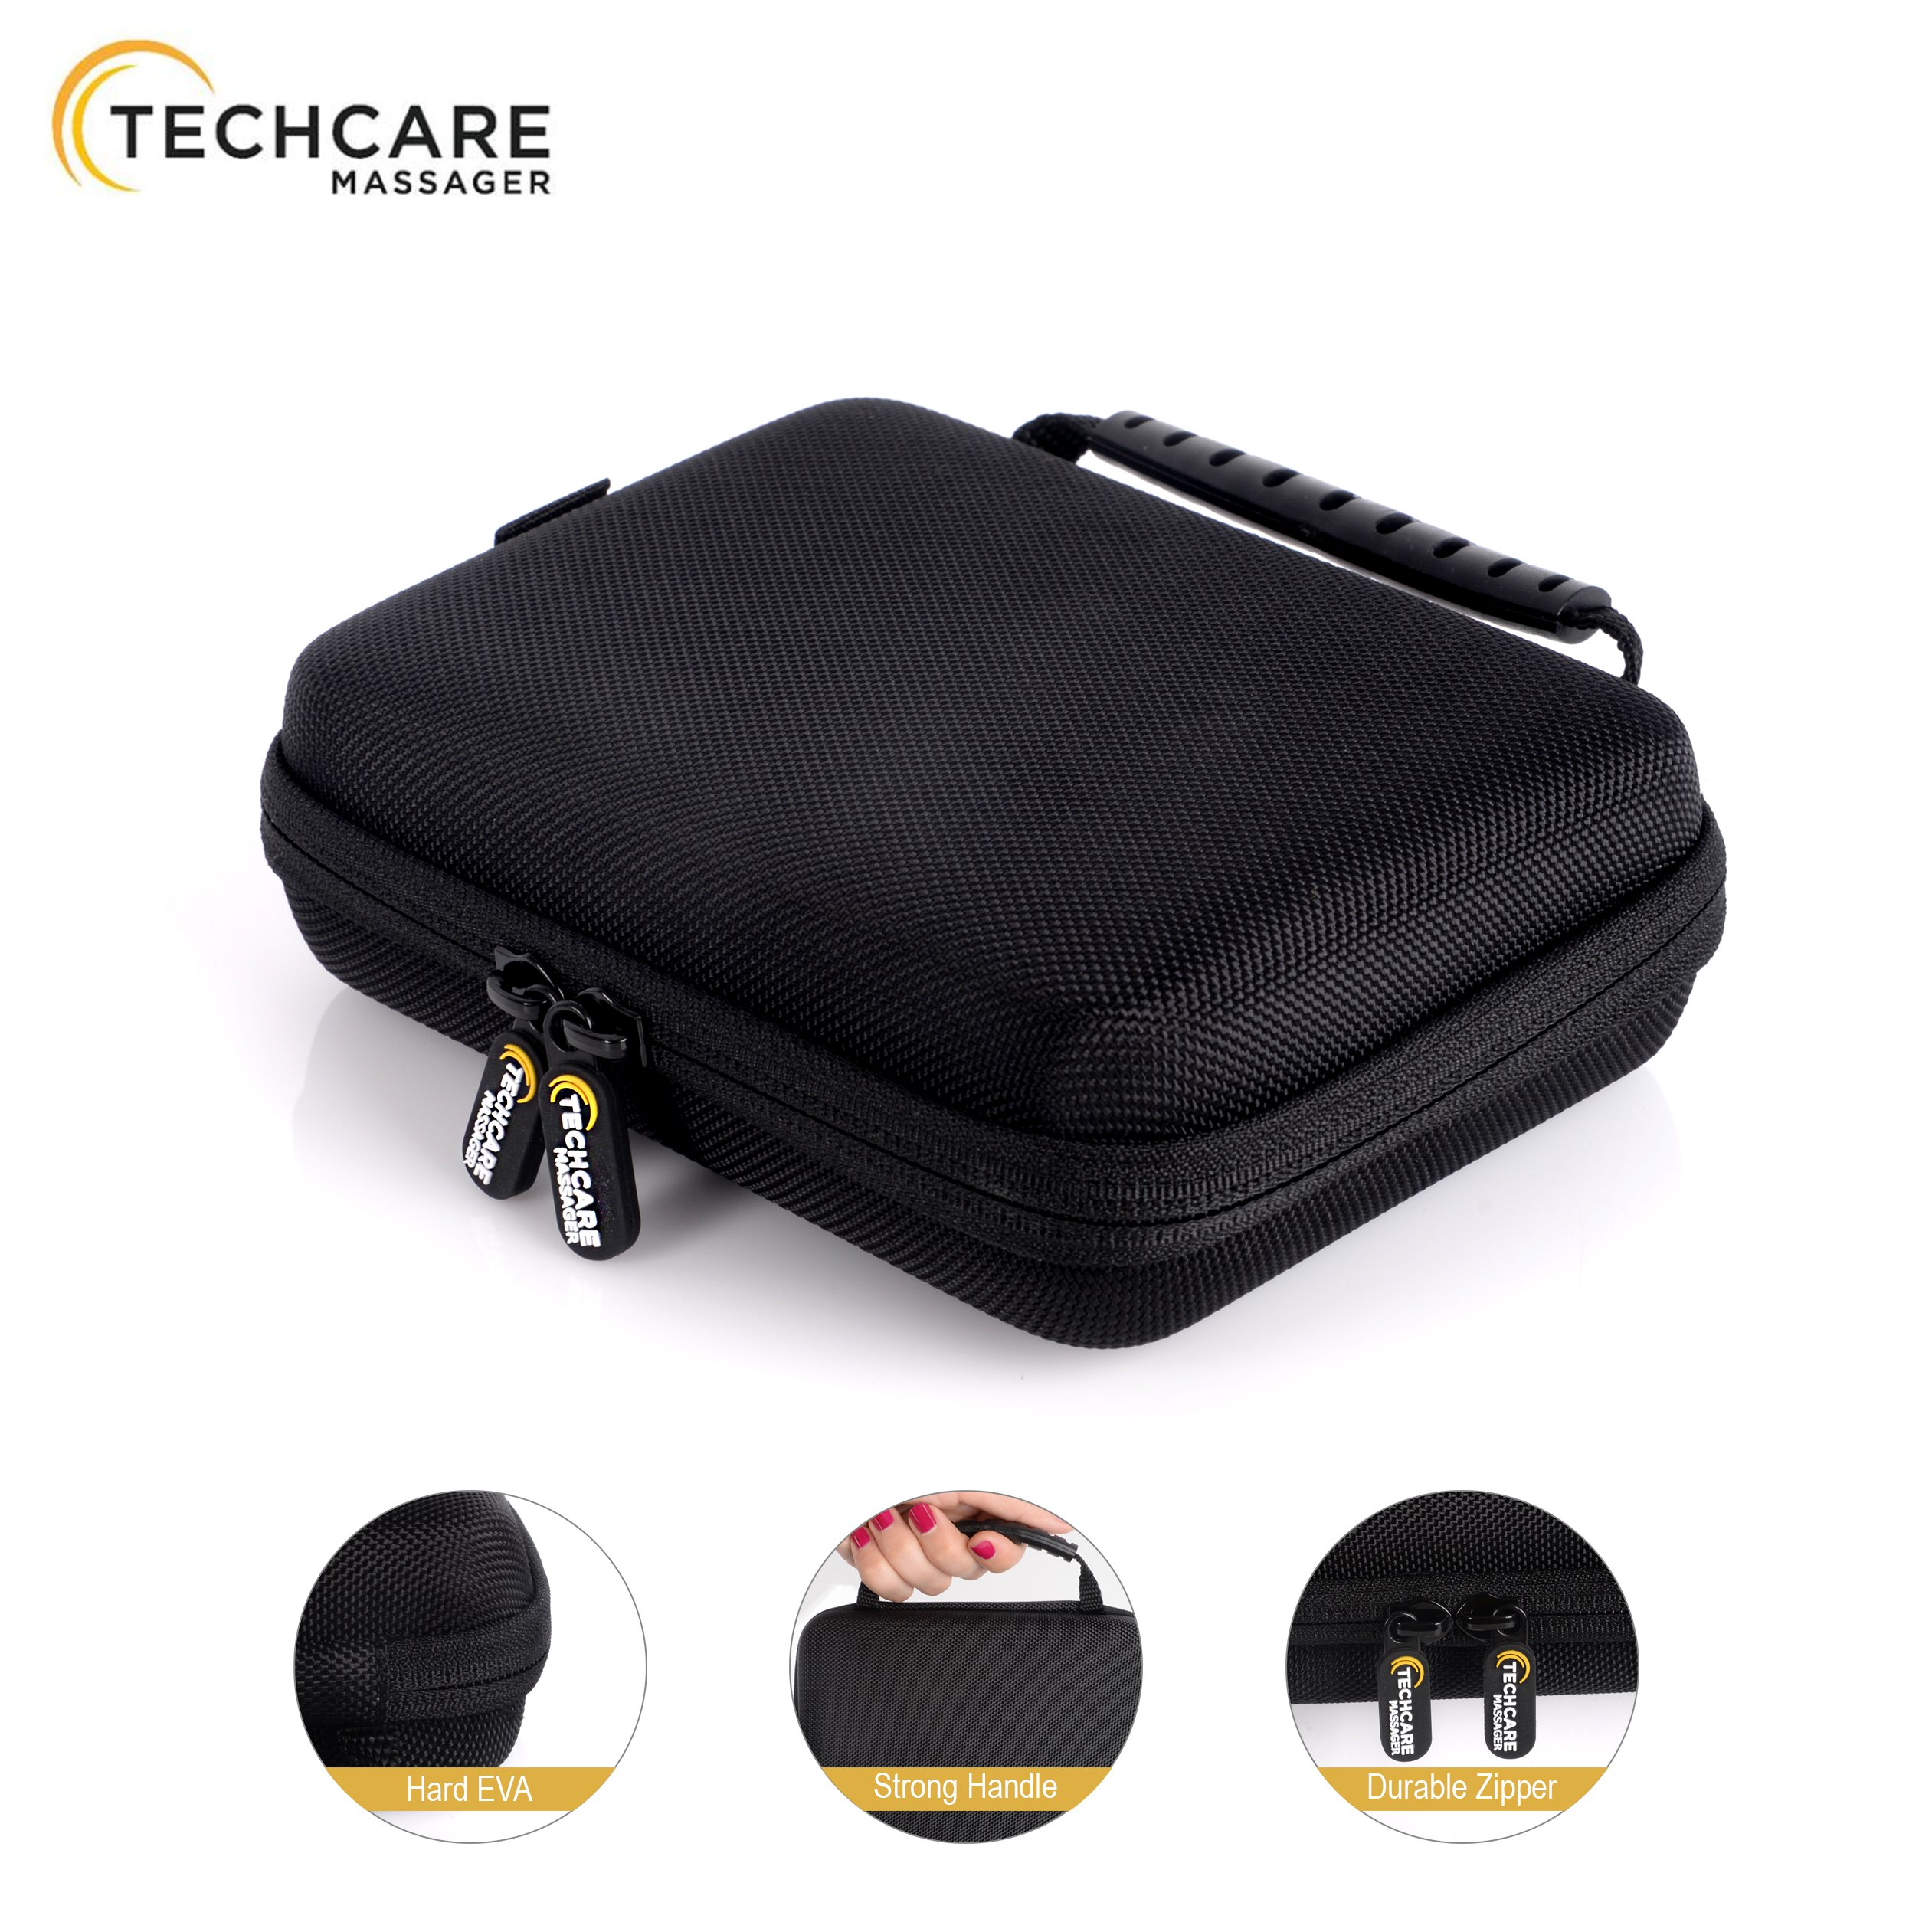 TechCare Massager Travel Case Carry Protective Tens Unit Machine Protective Hard Carrying Case for SE MINI S PRO Elite Models